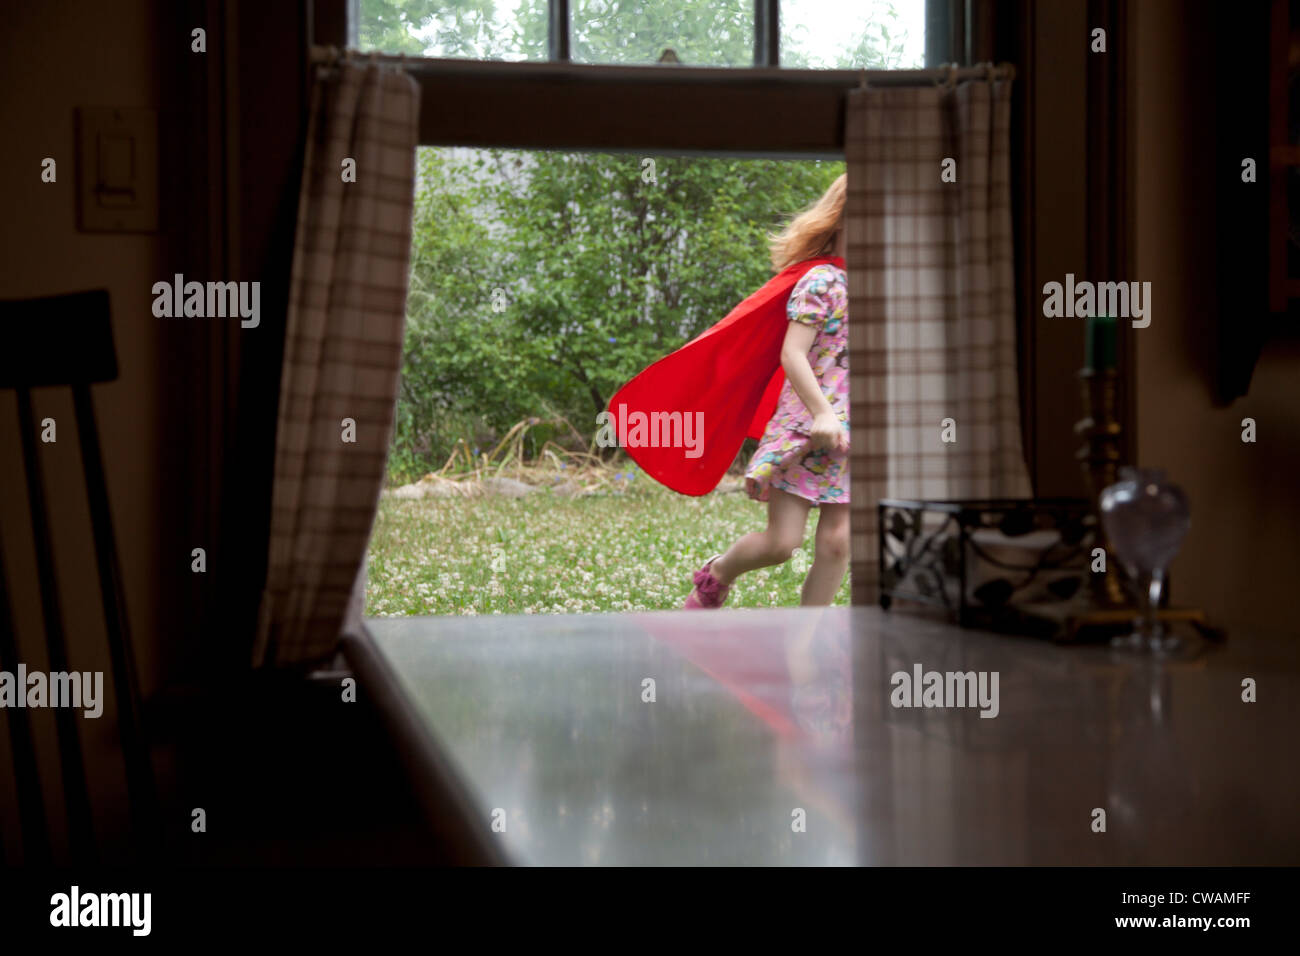 Girl in a cape running past an open window - Stock Image